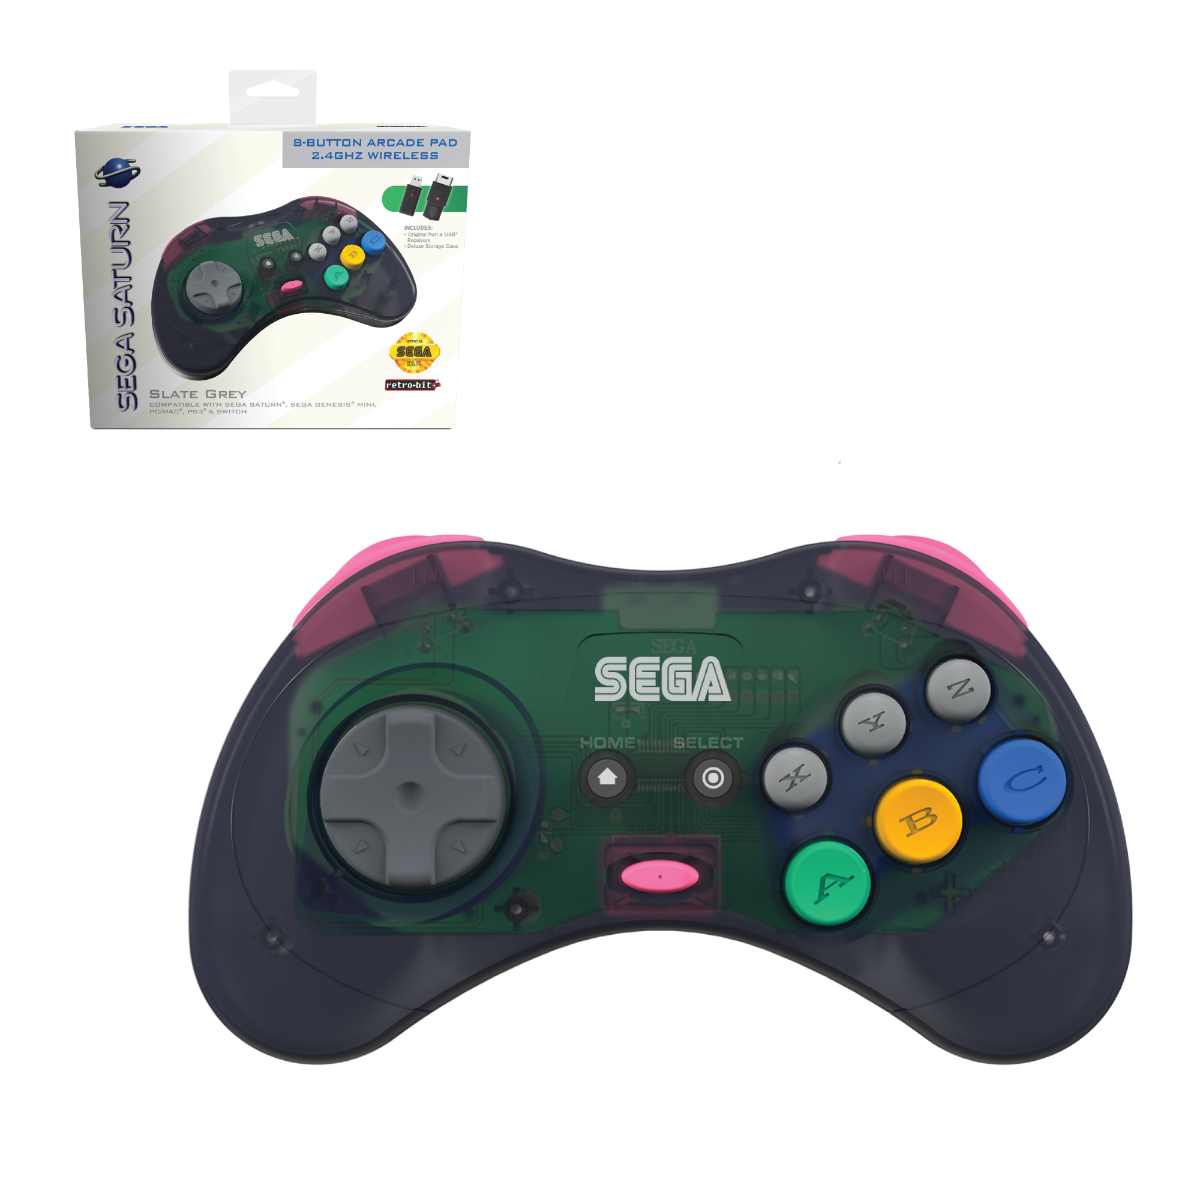 SEGA, Saturn, wireless, 8-button, arcade pad, bluetooth, PC, Mac, Android, Switch, Slate Grey